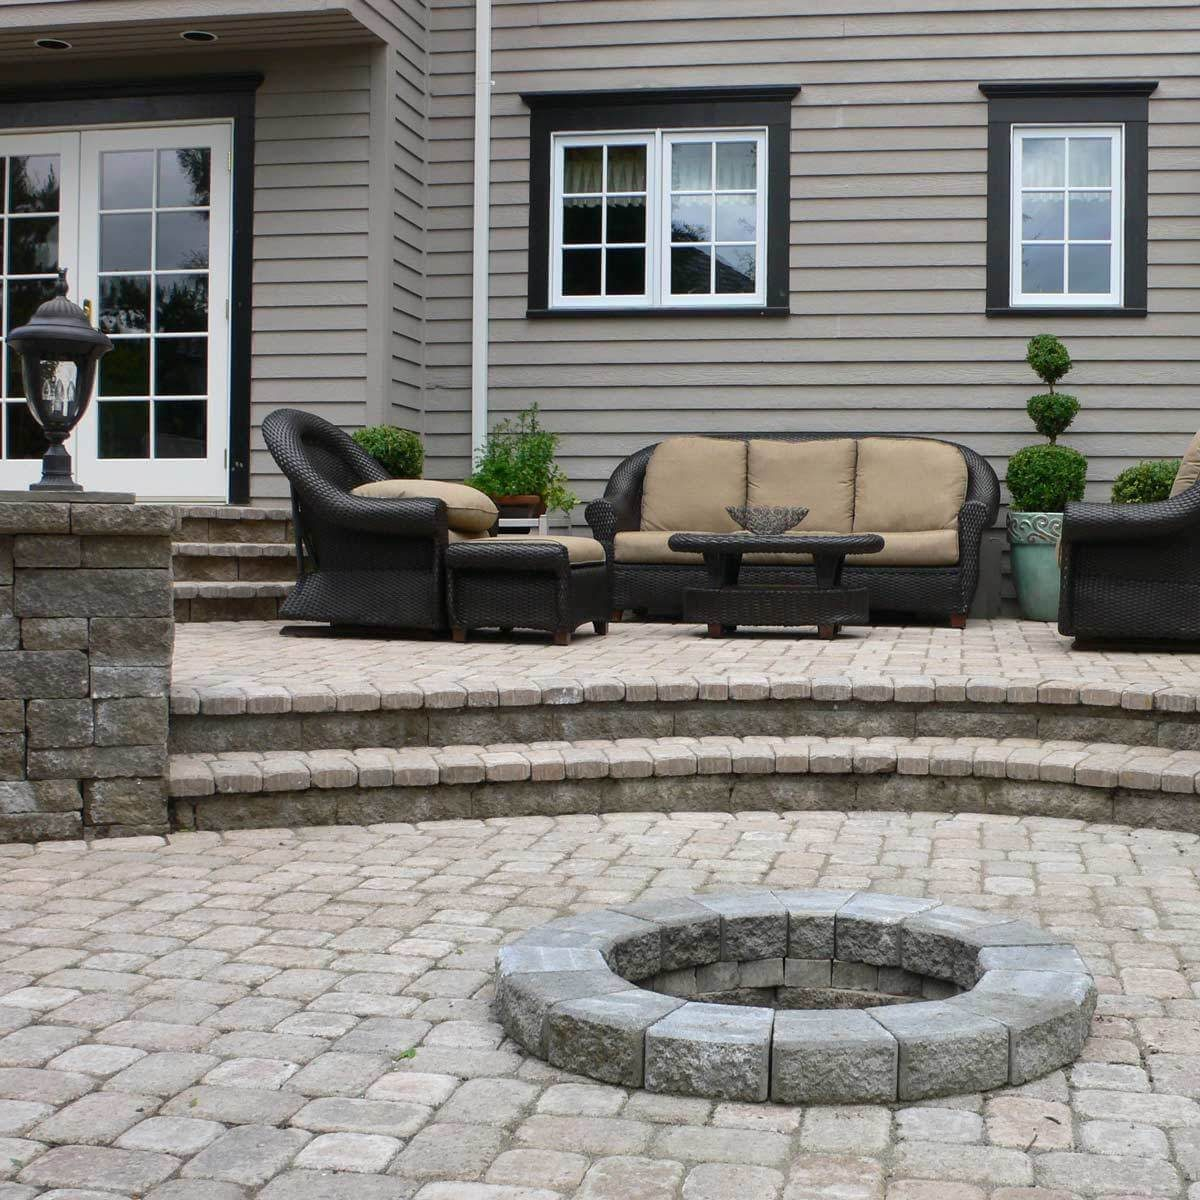 15 Perfect Patio Designs — The Family Handyman on Tiered Patio Ideas id=75657